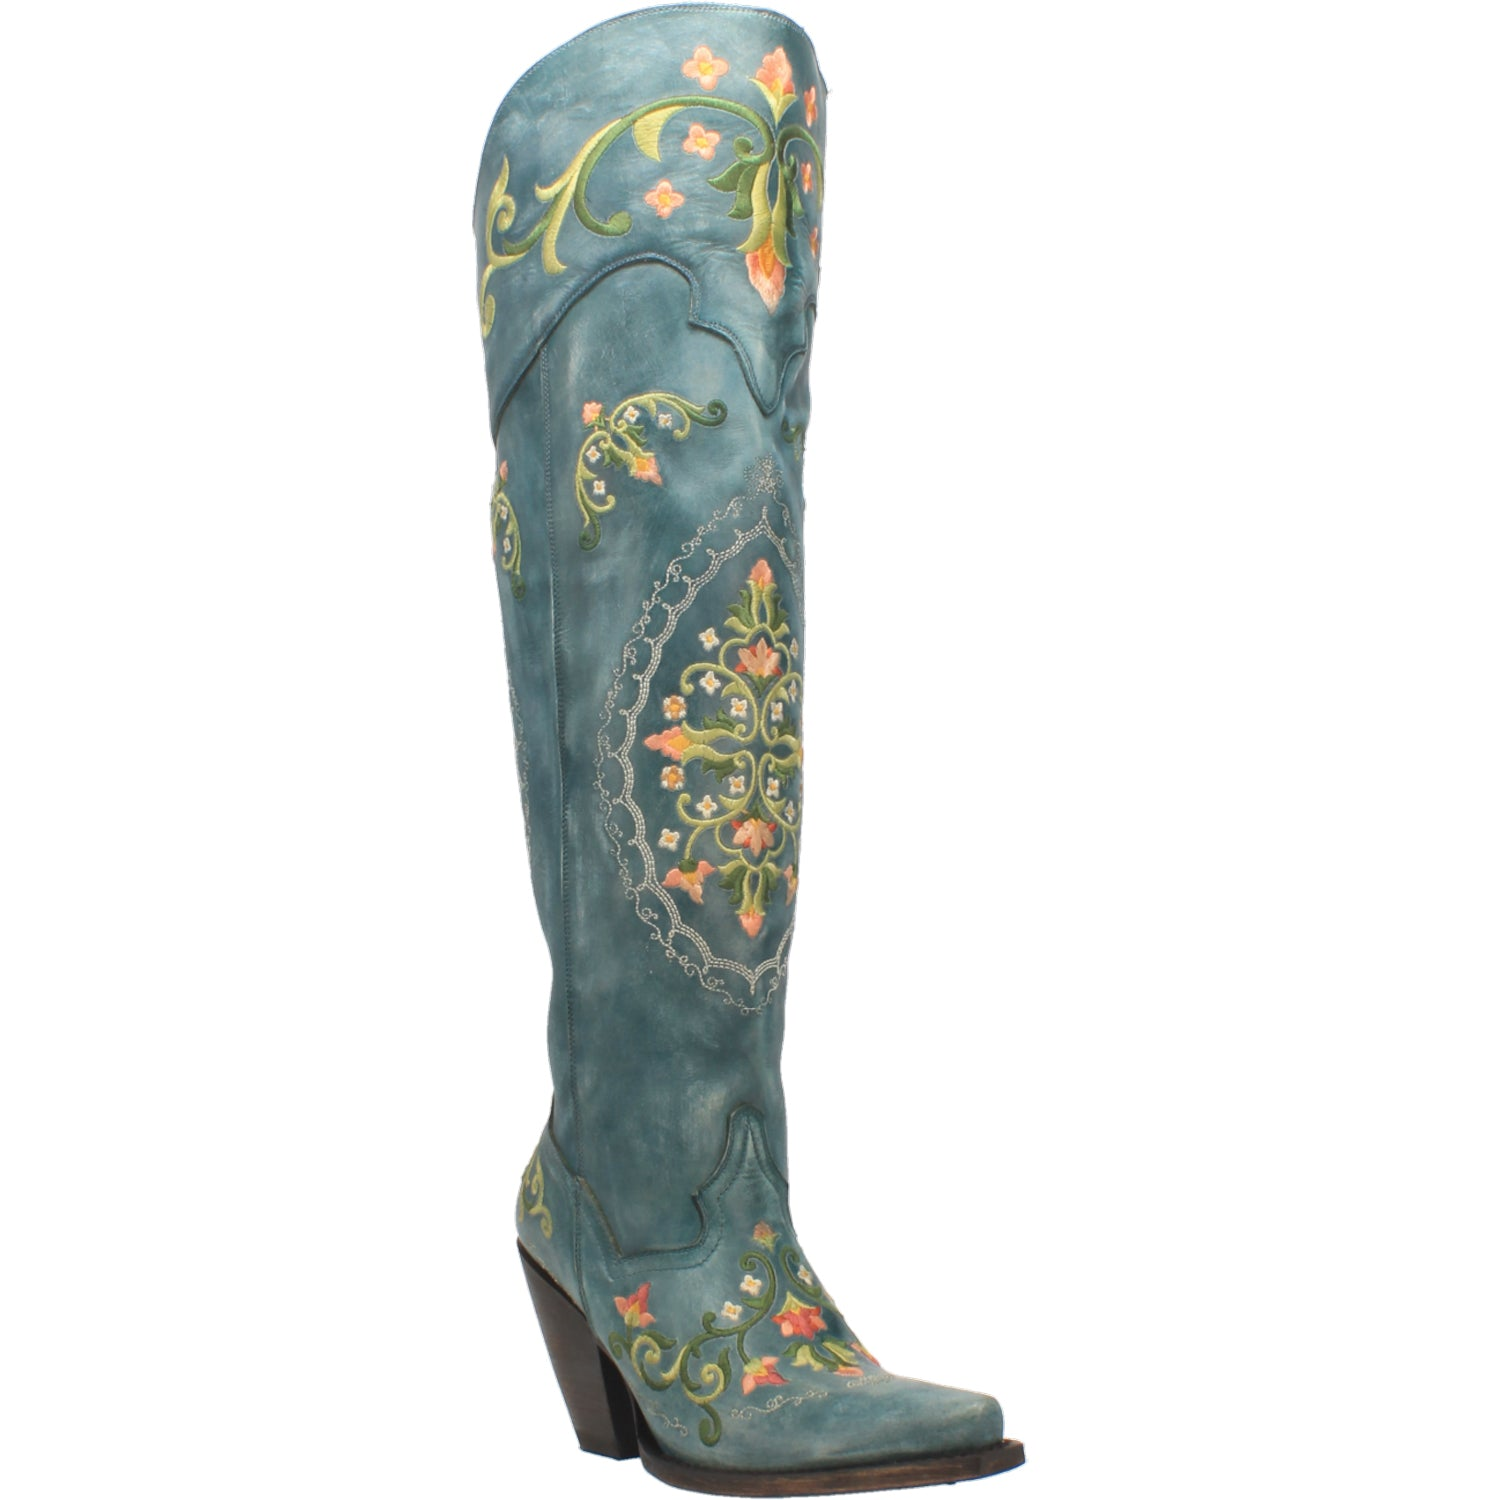 FLOWER CHILD LEATHER BOOT 15267551117354